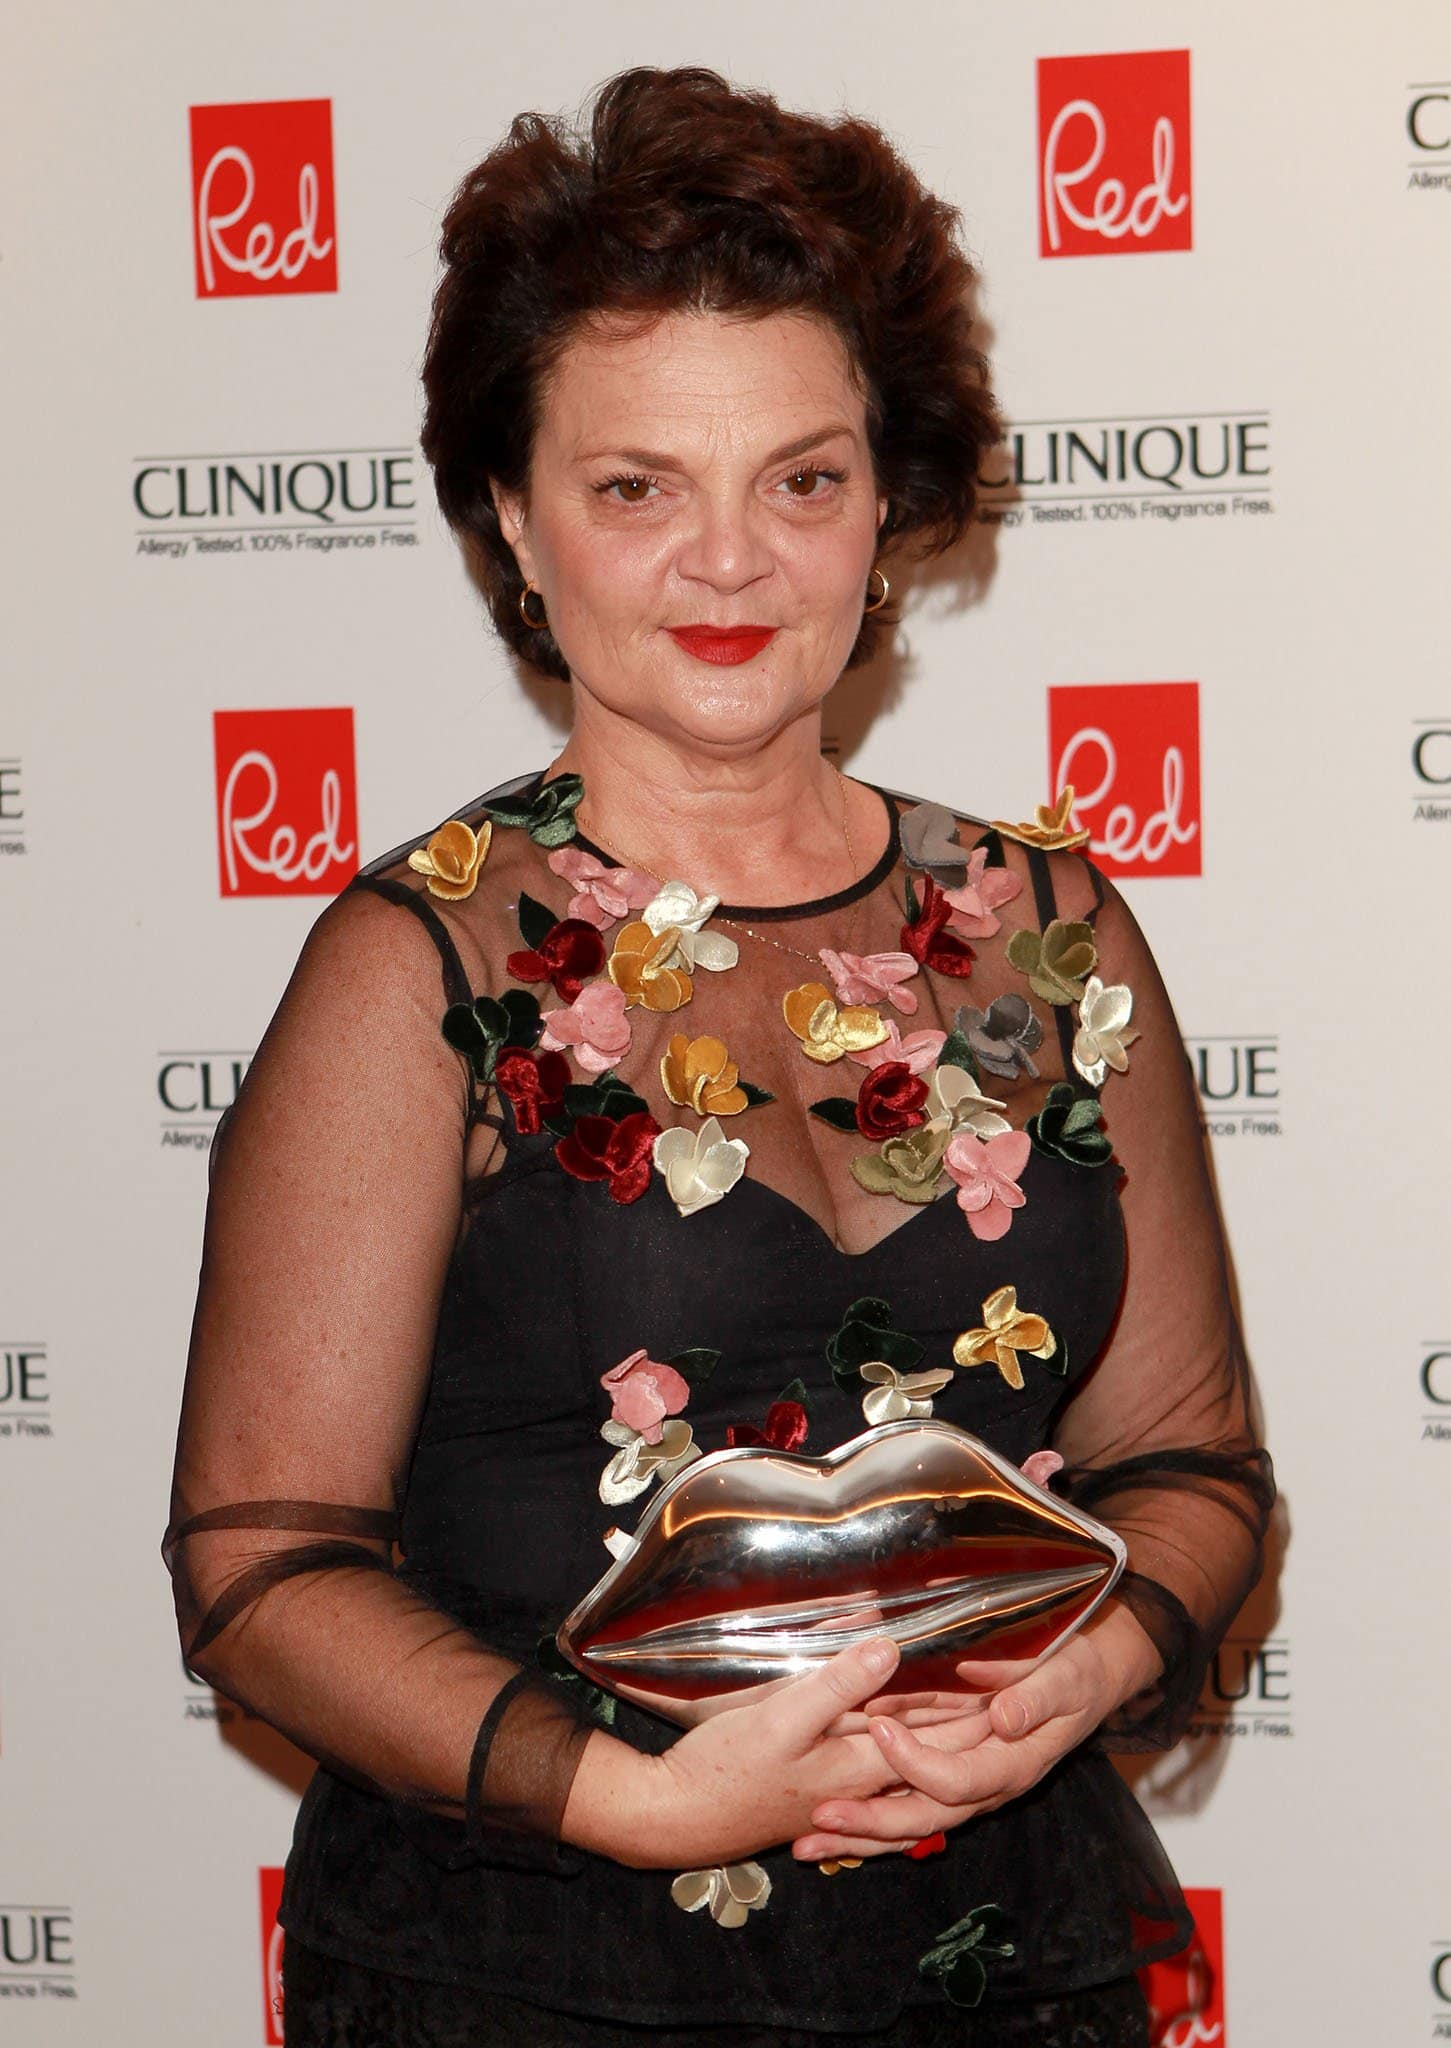 Lulu Guinness at the Red Woman of the Year 2014 ceremony on September 3, 2014